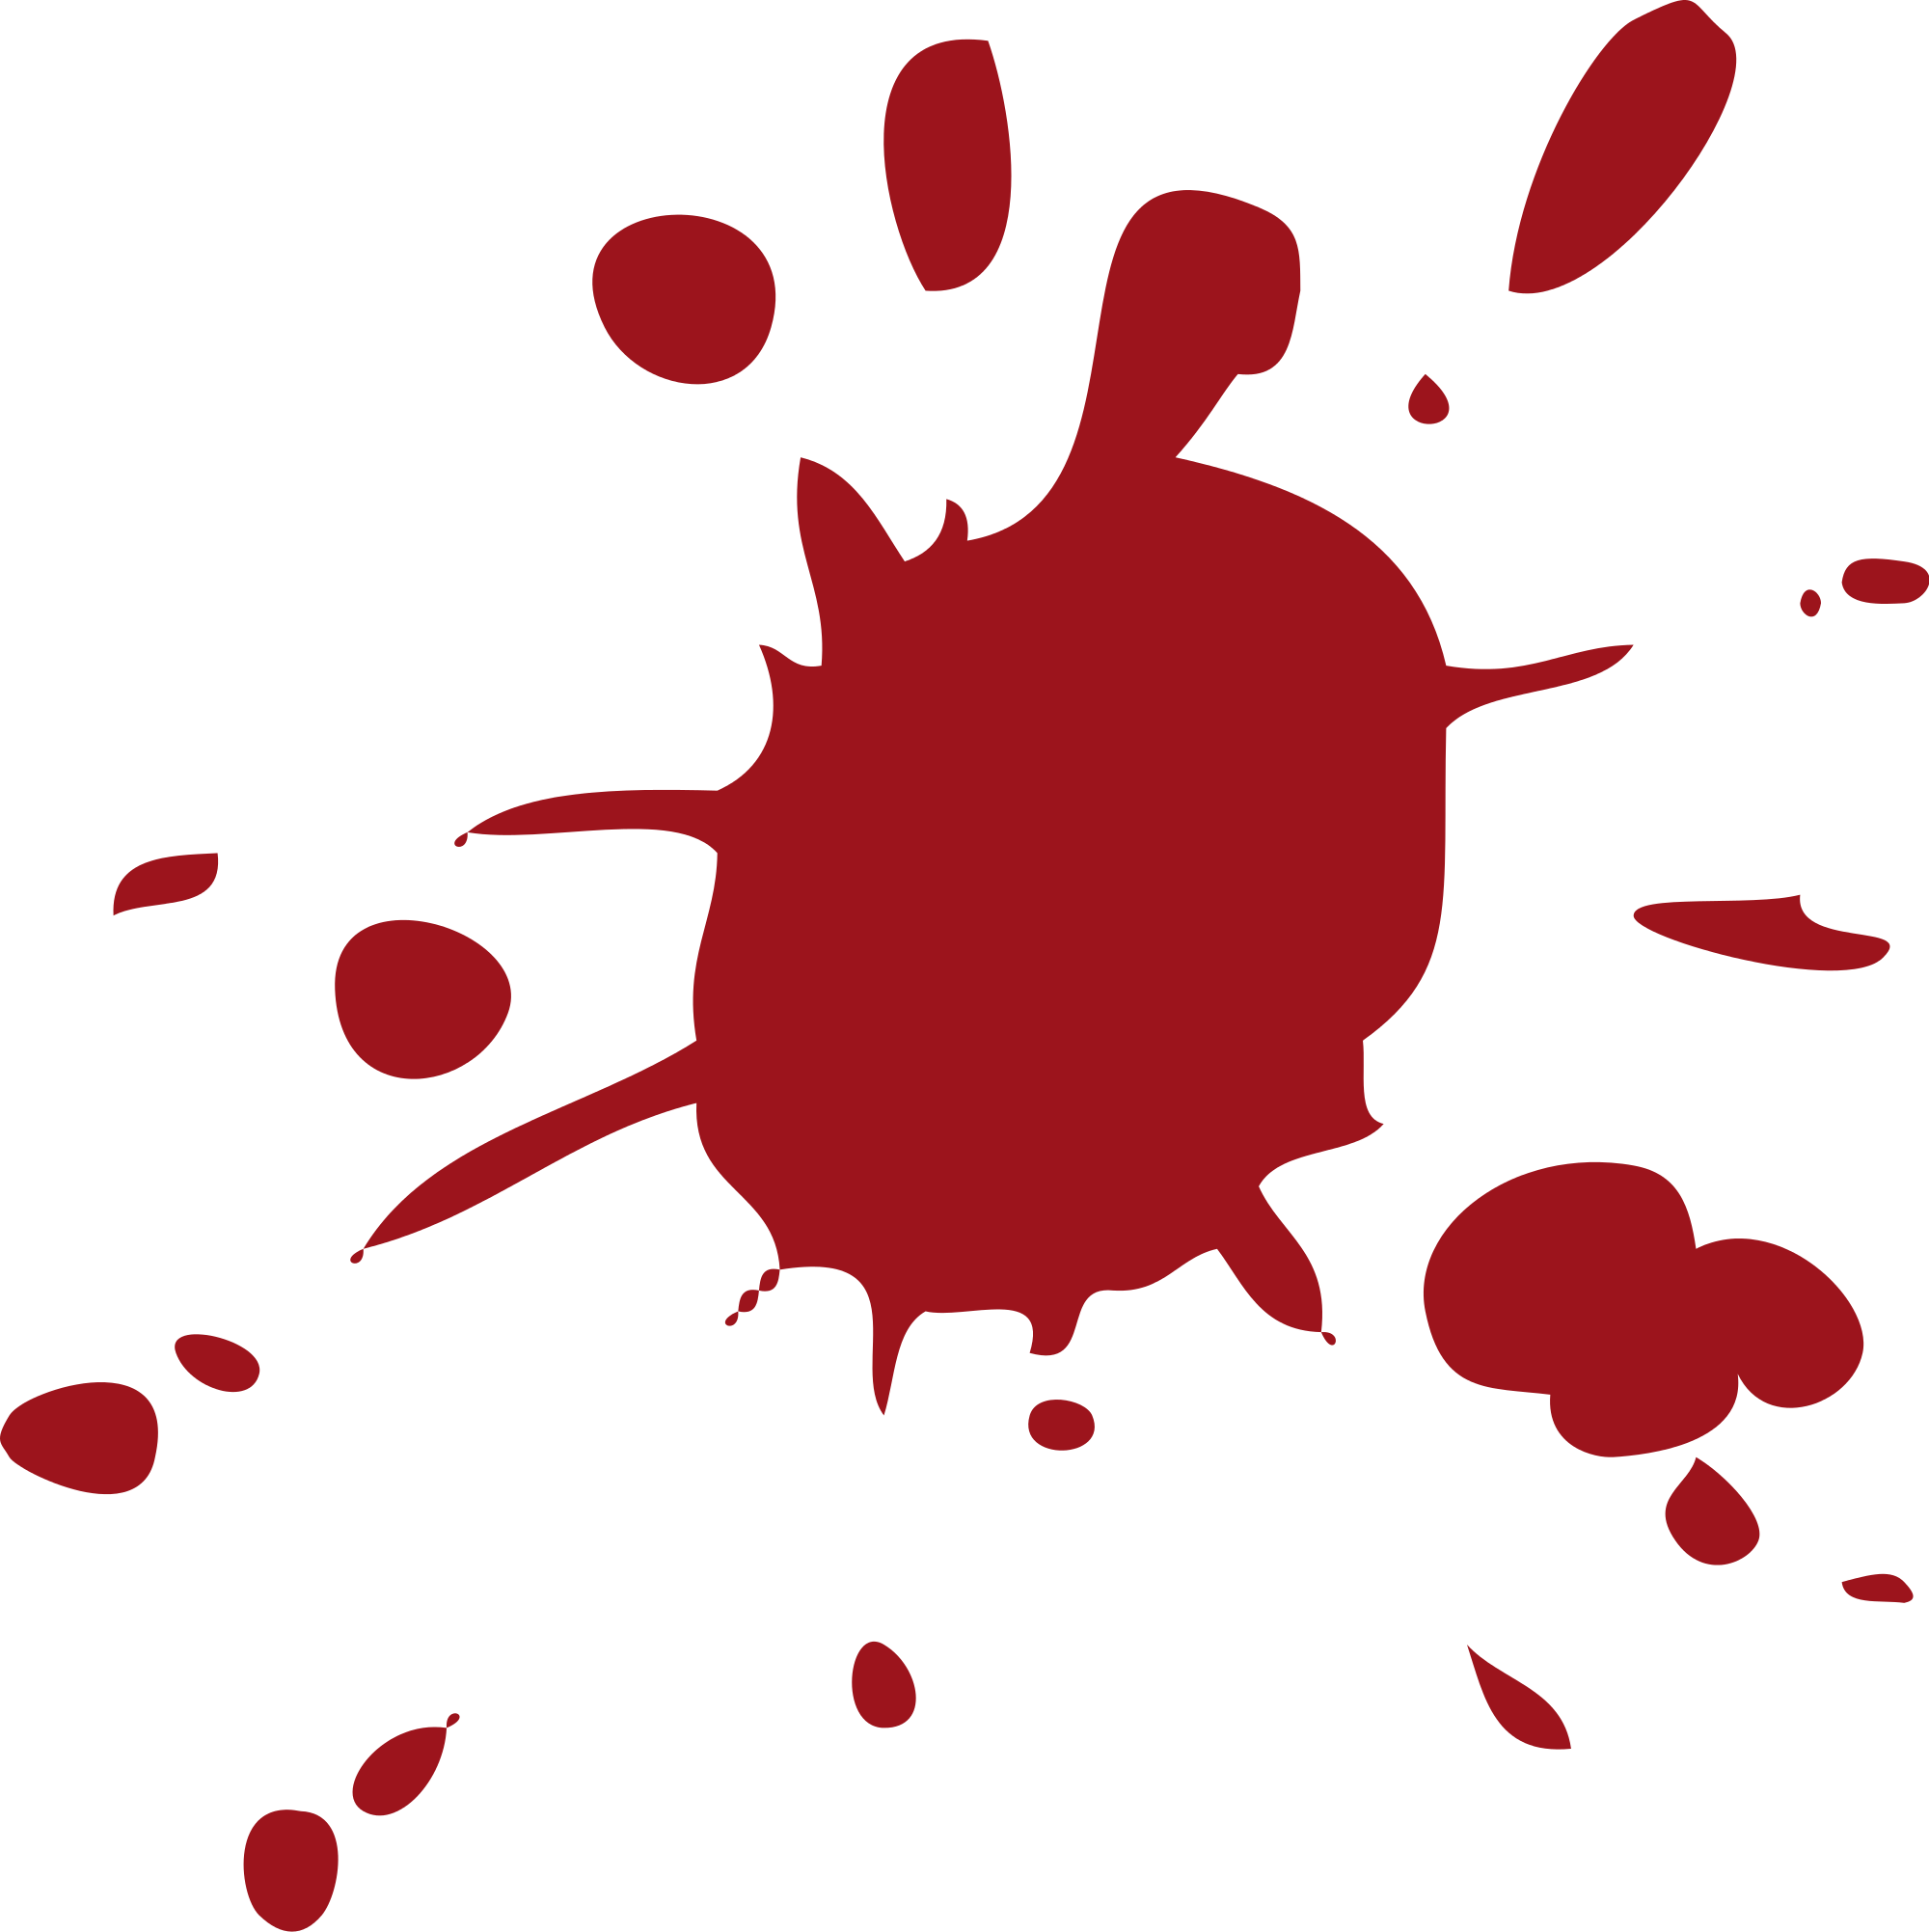 Blood pool png. Images free download splashes